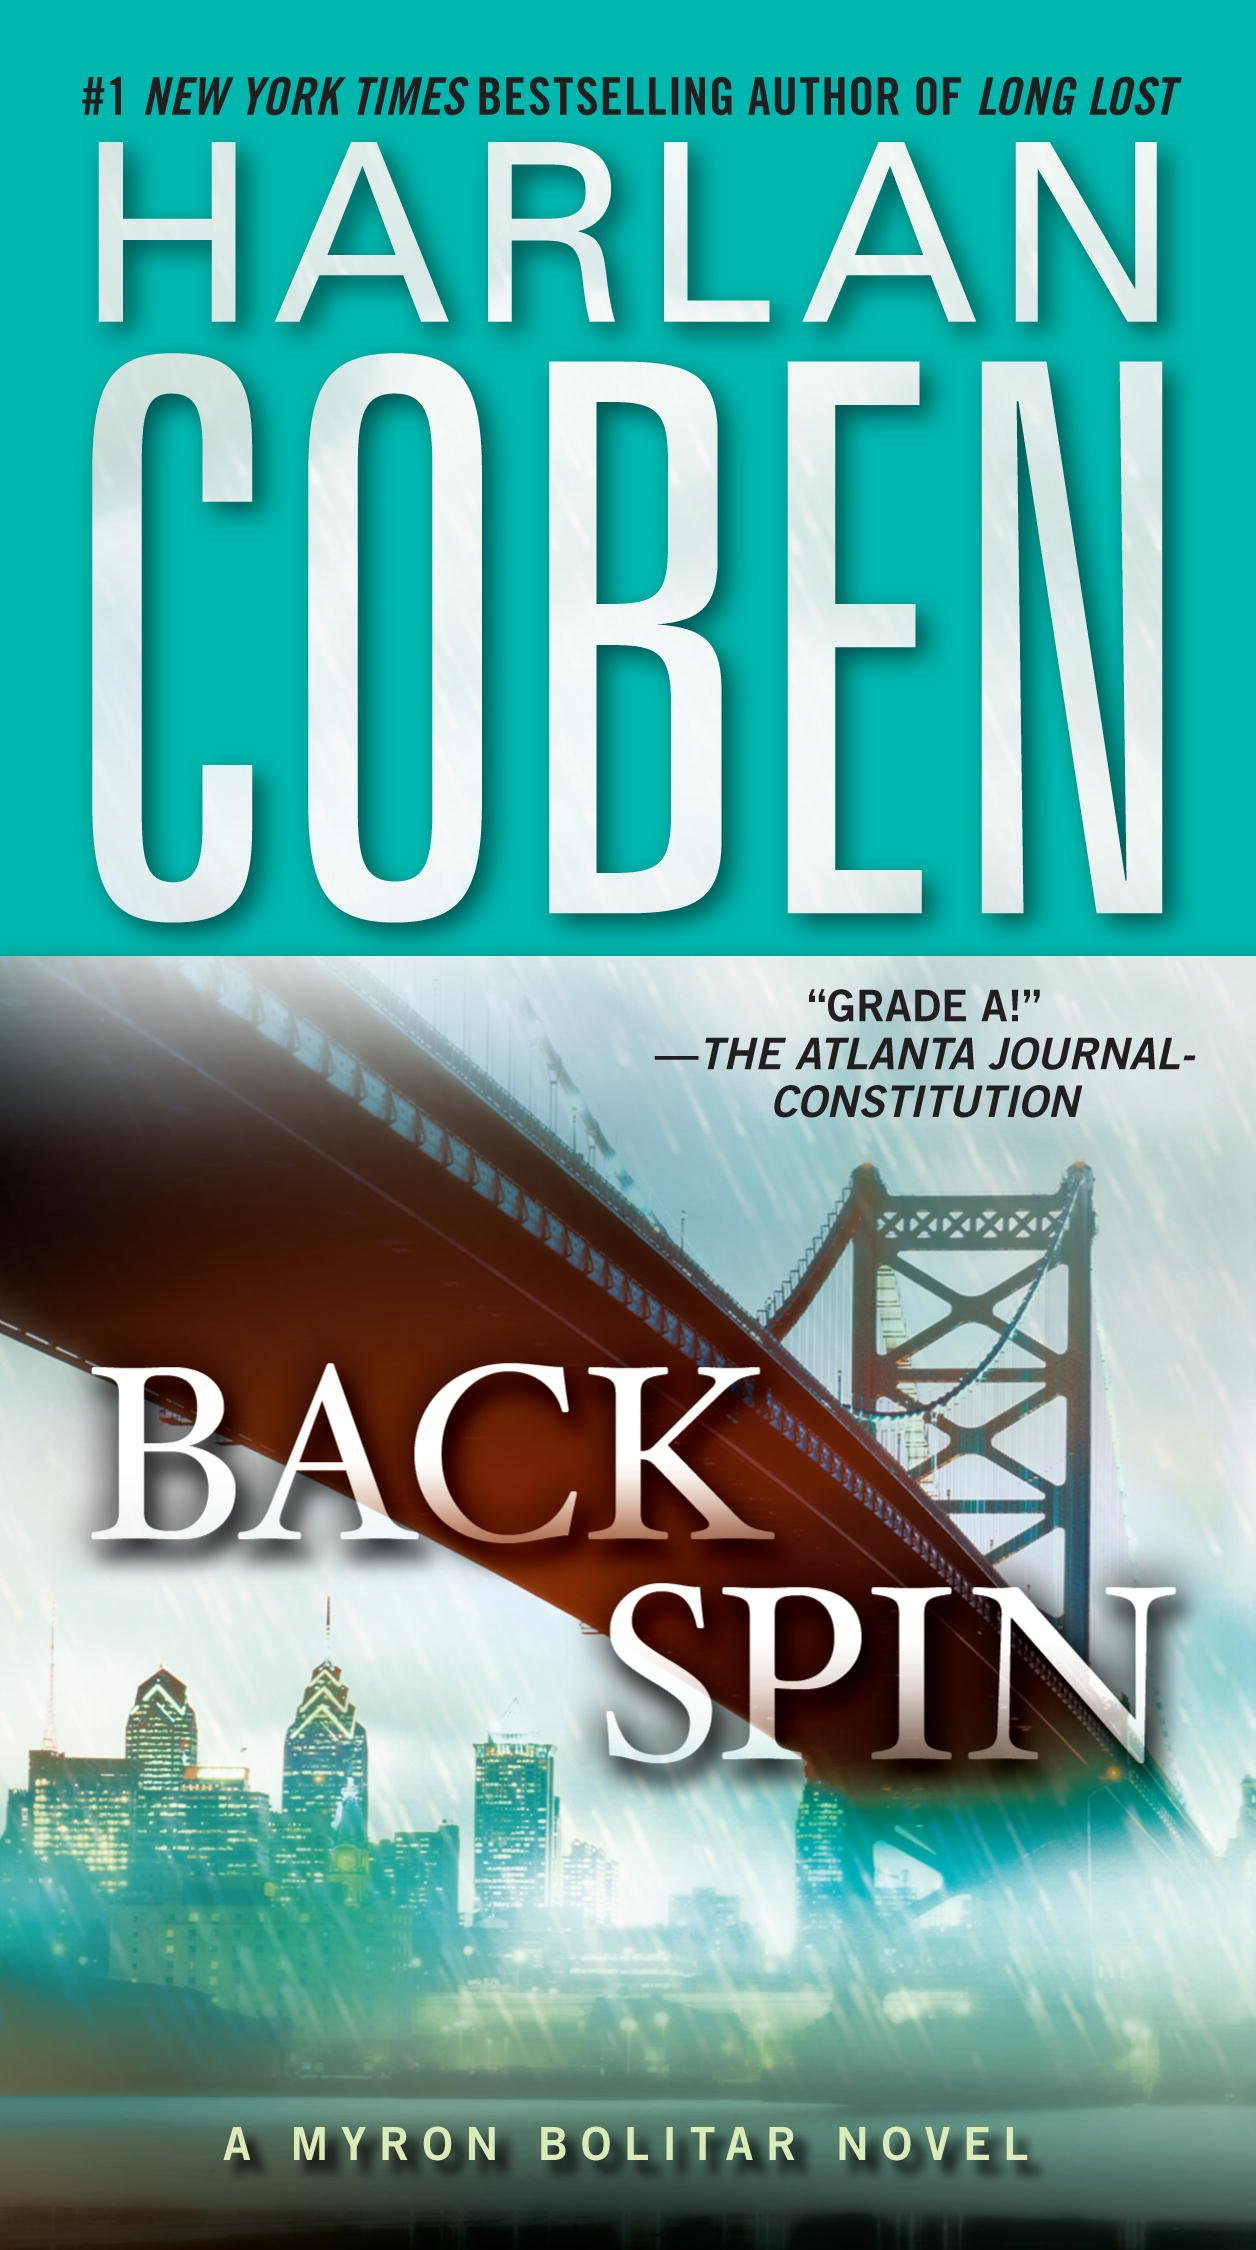 Book cover of Backspin